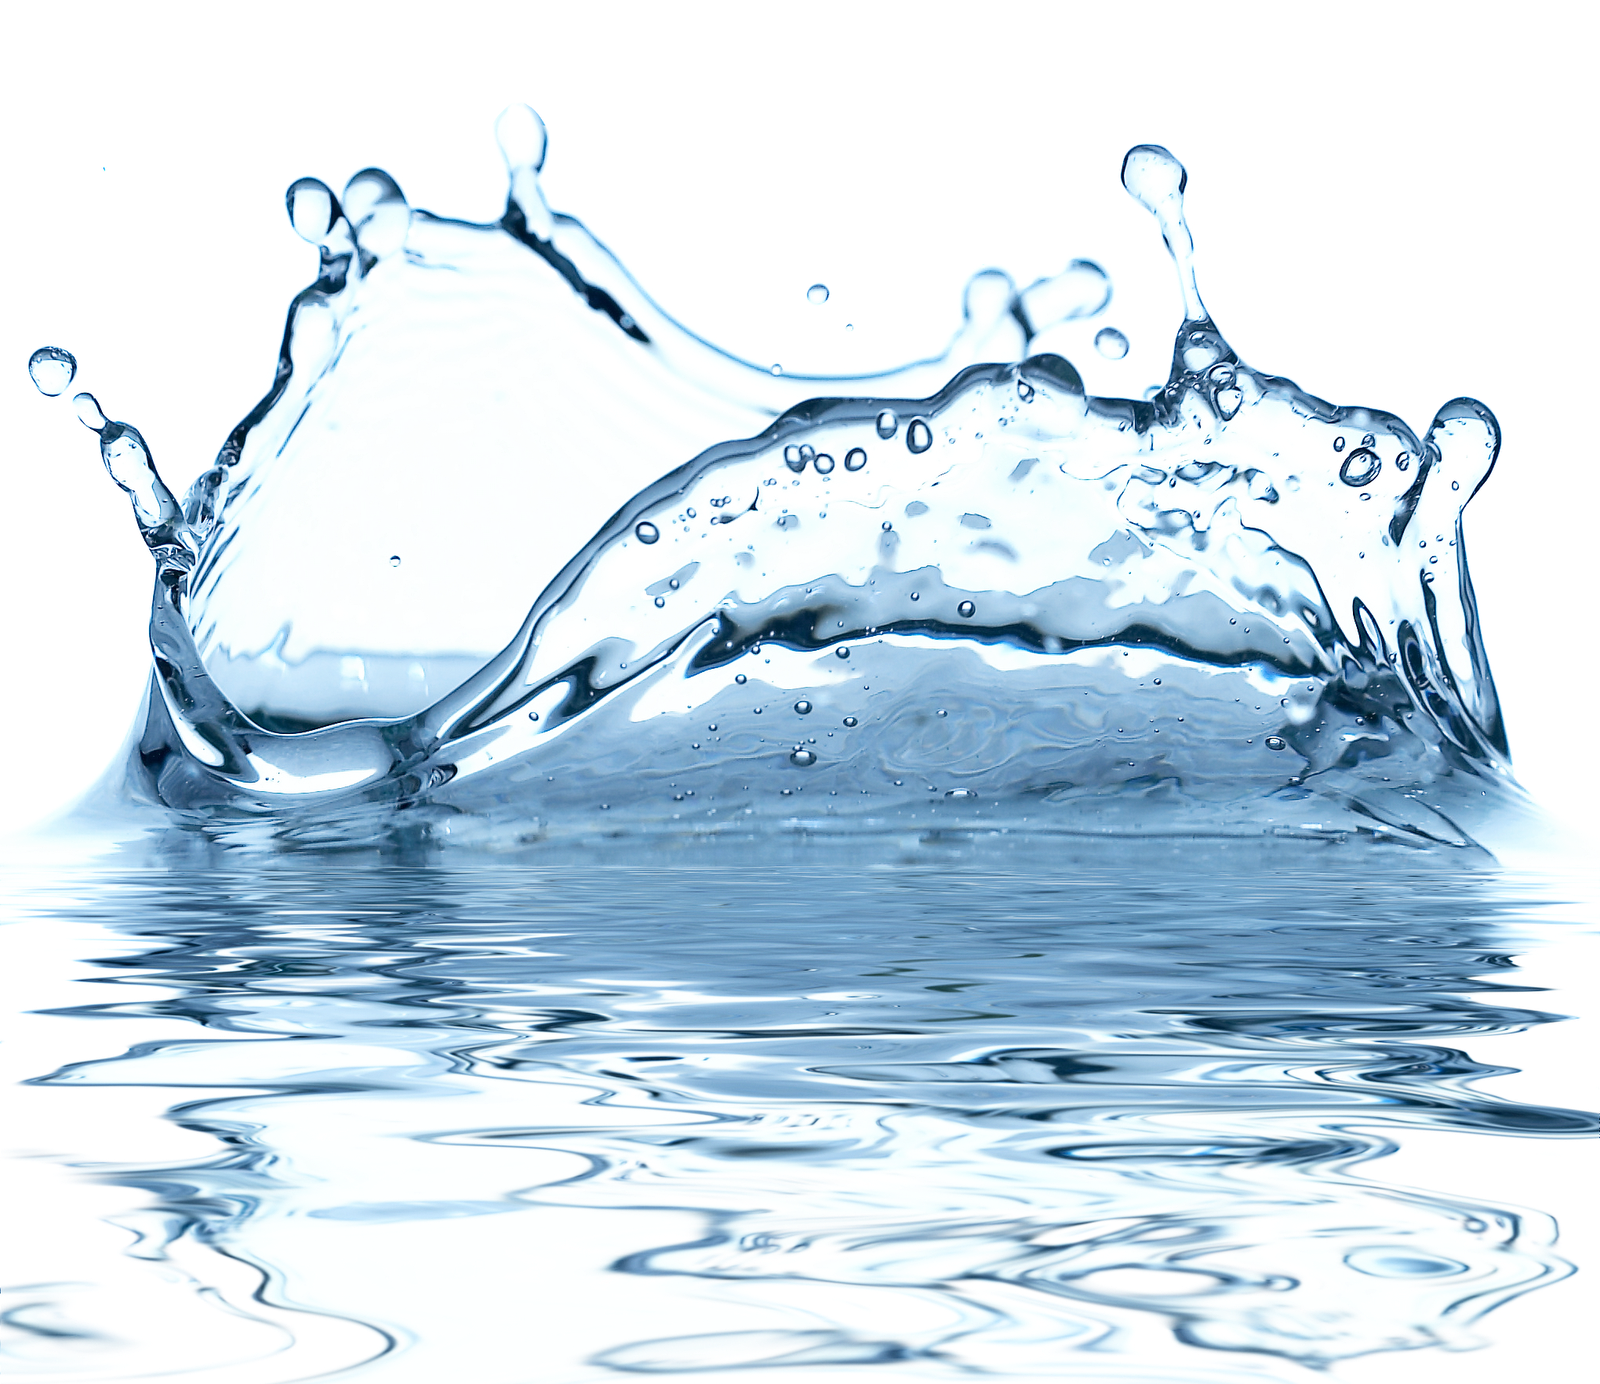 banner free Drawn water droplets effect. Transparent splash high resolution